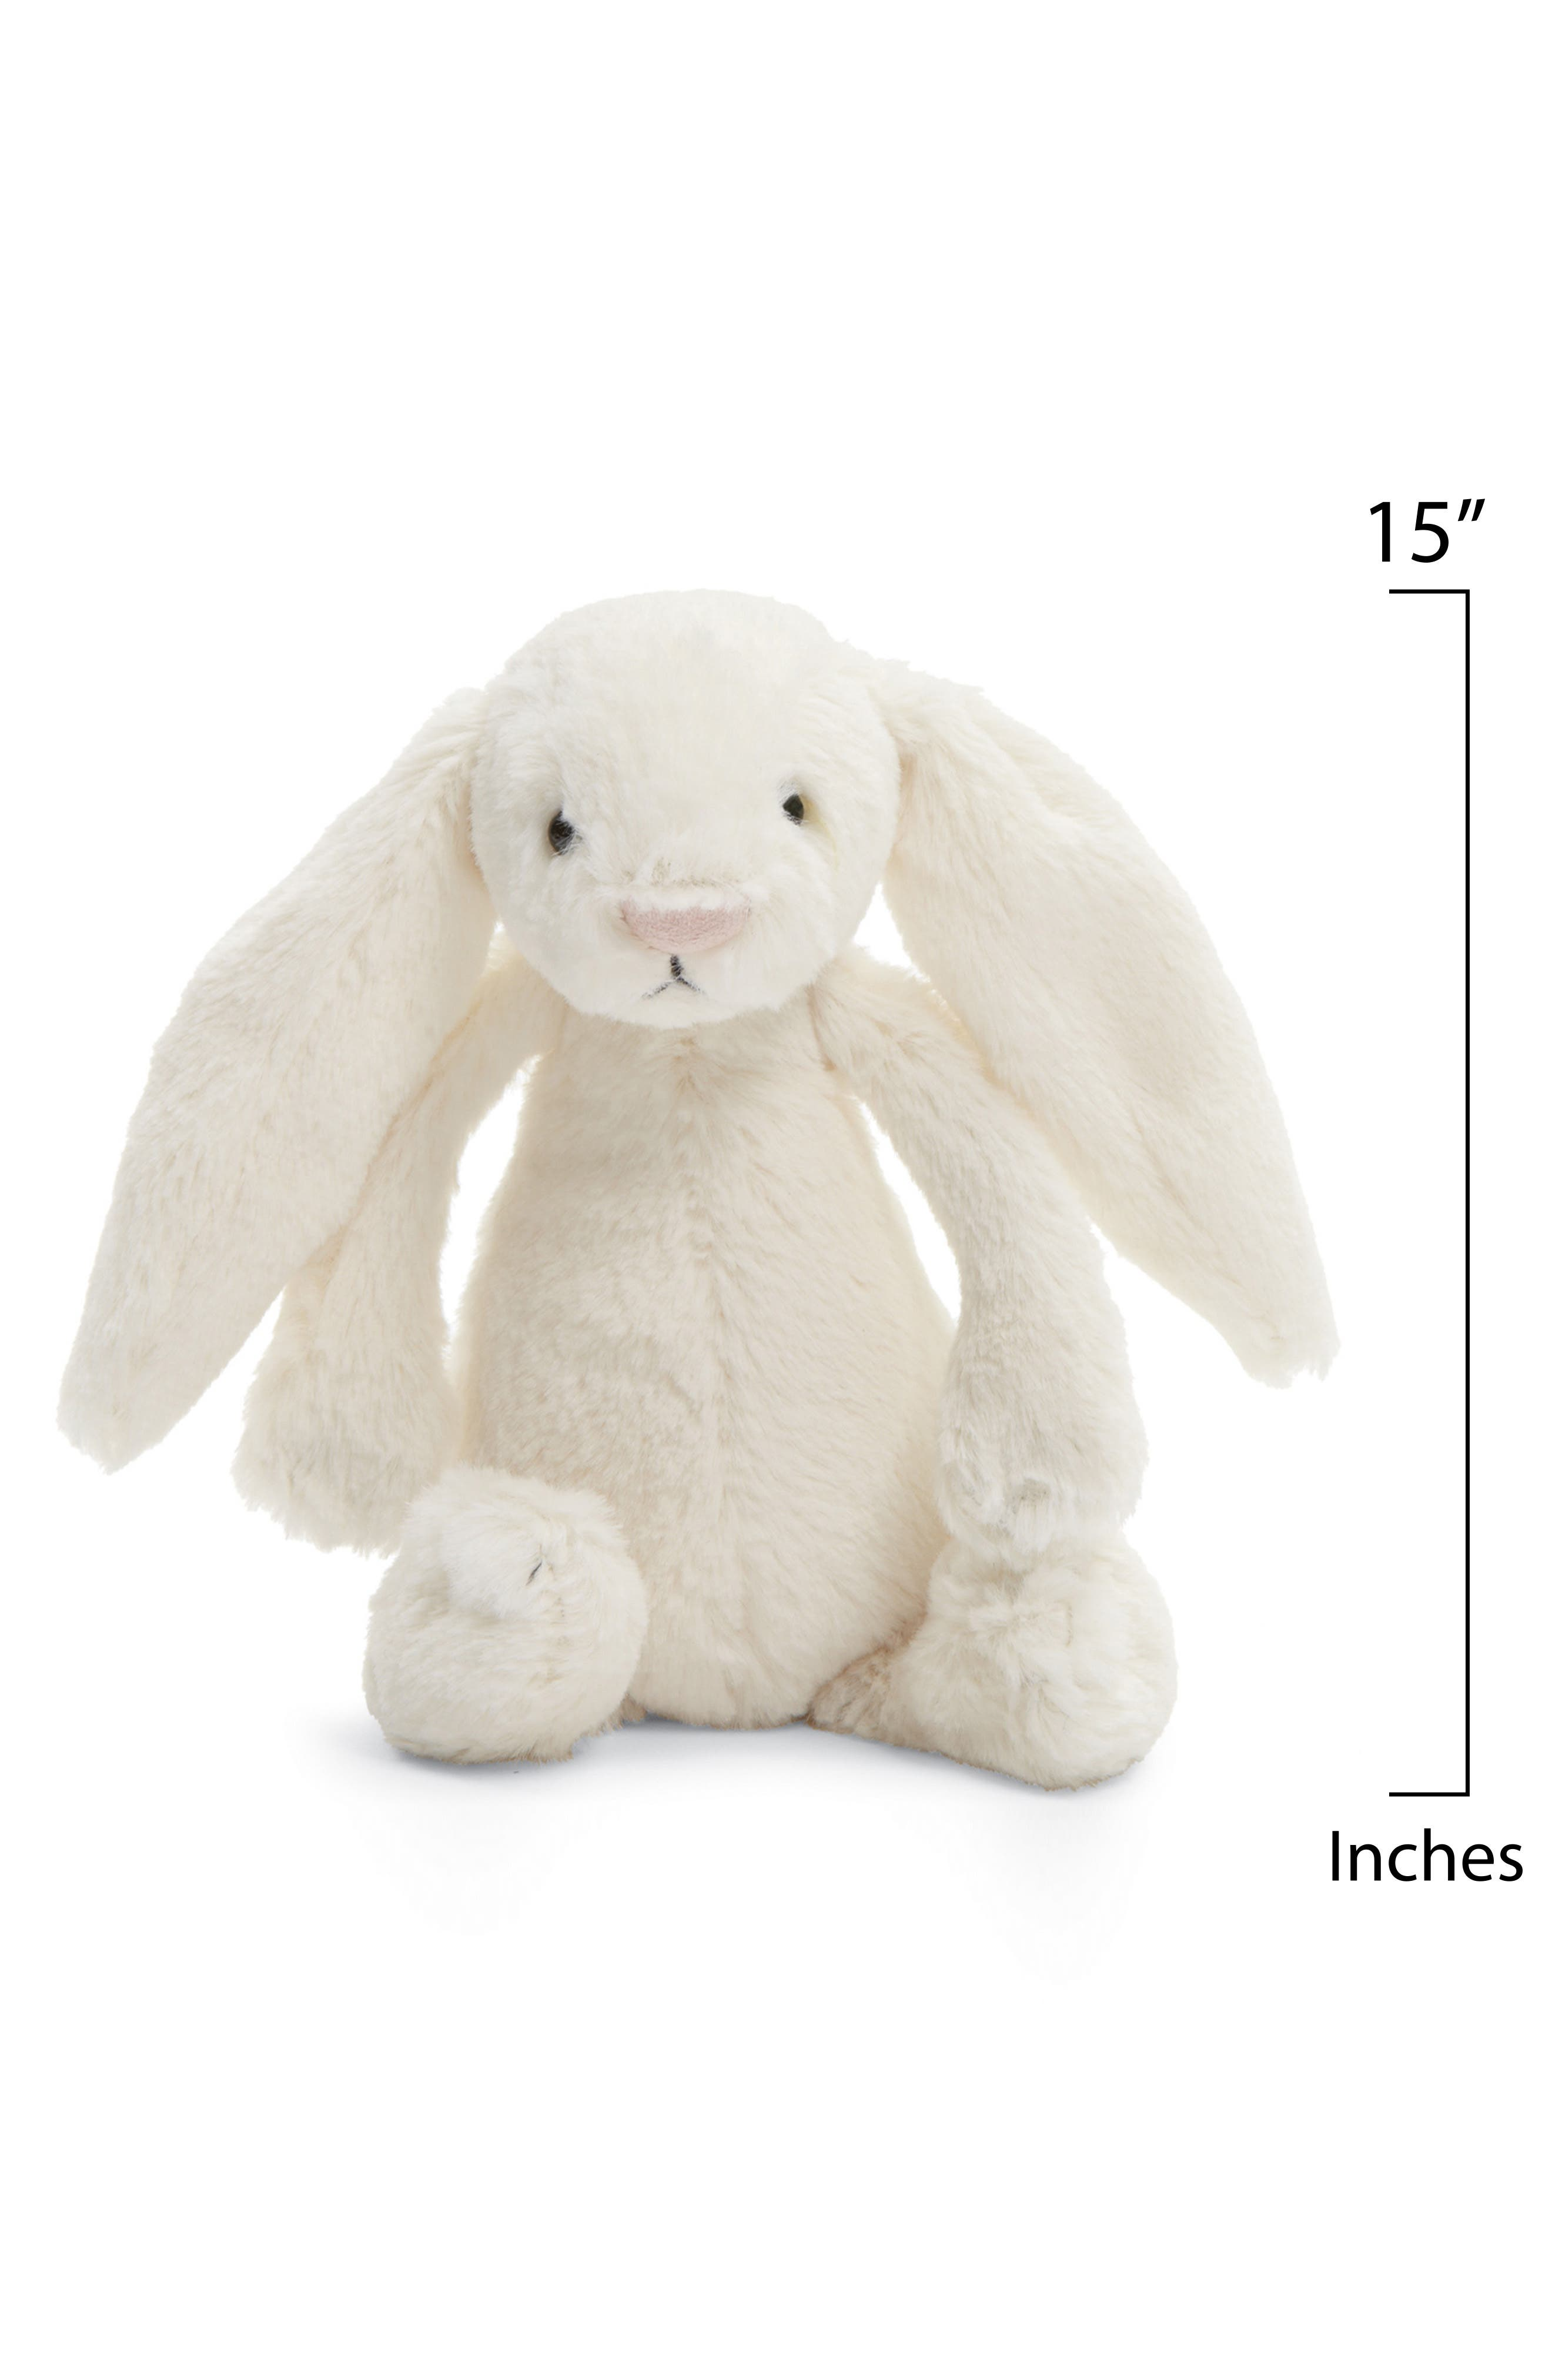 'Large Bashful Bunny' Stuffed Animal,                             Alternate thumbnail 3, color,                             Cream